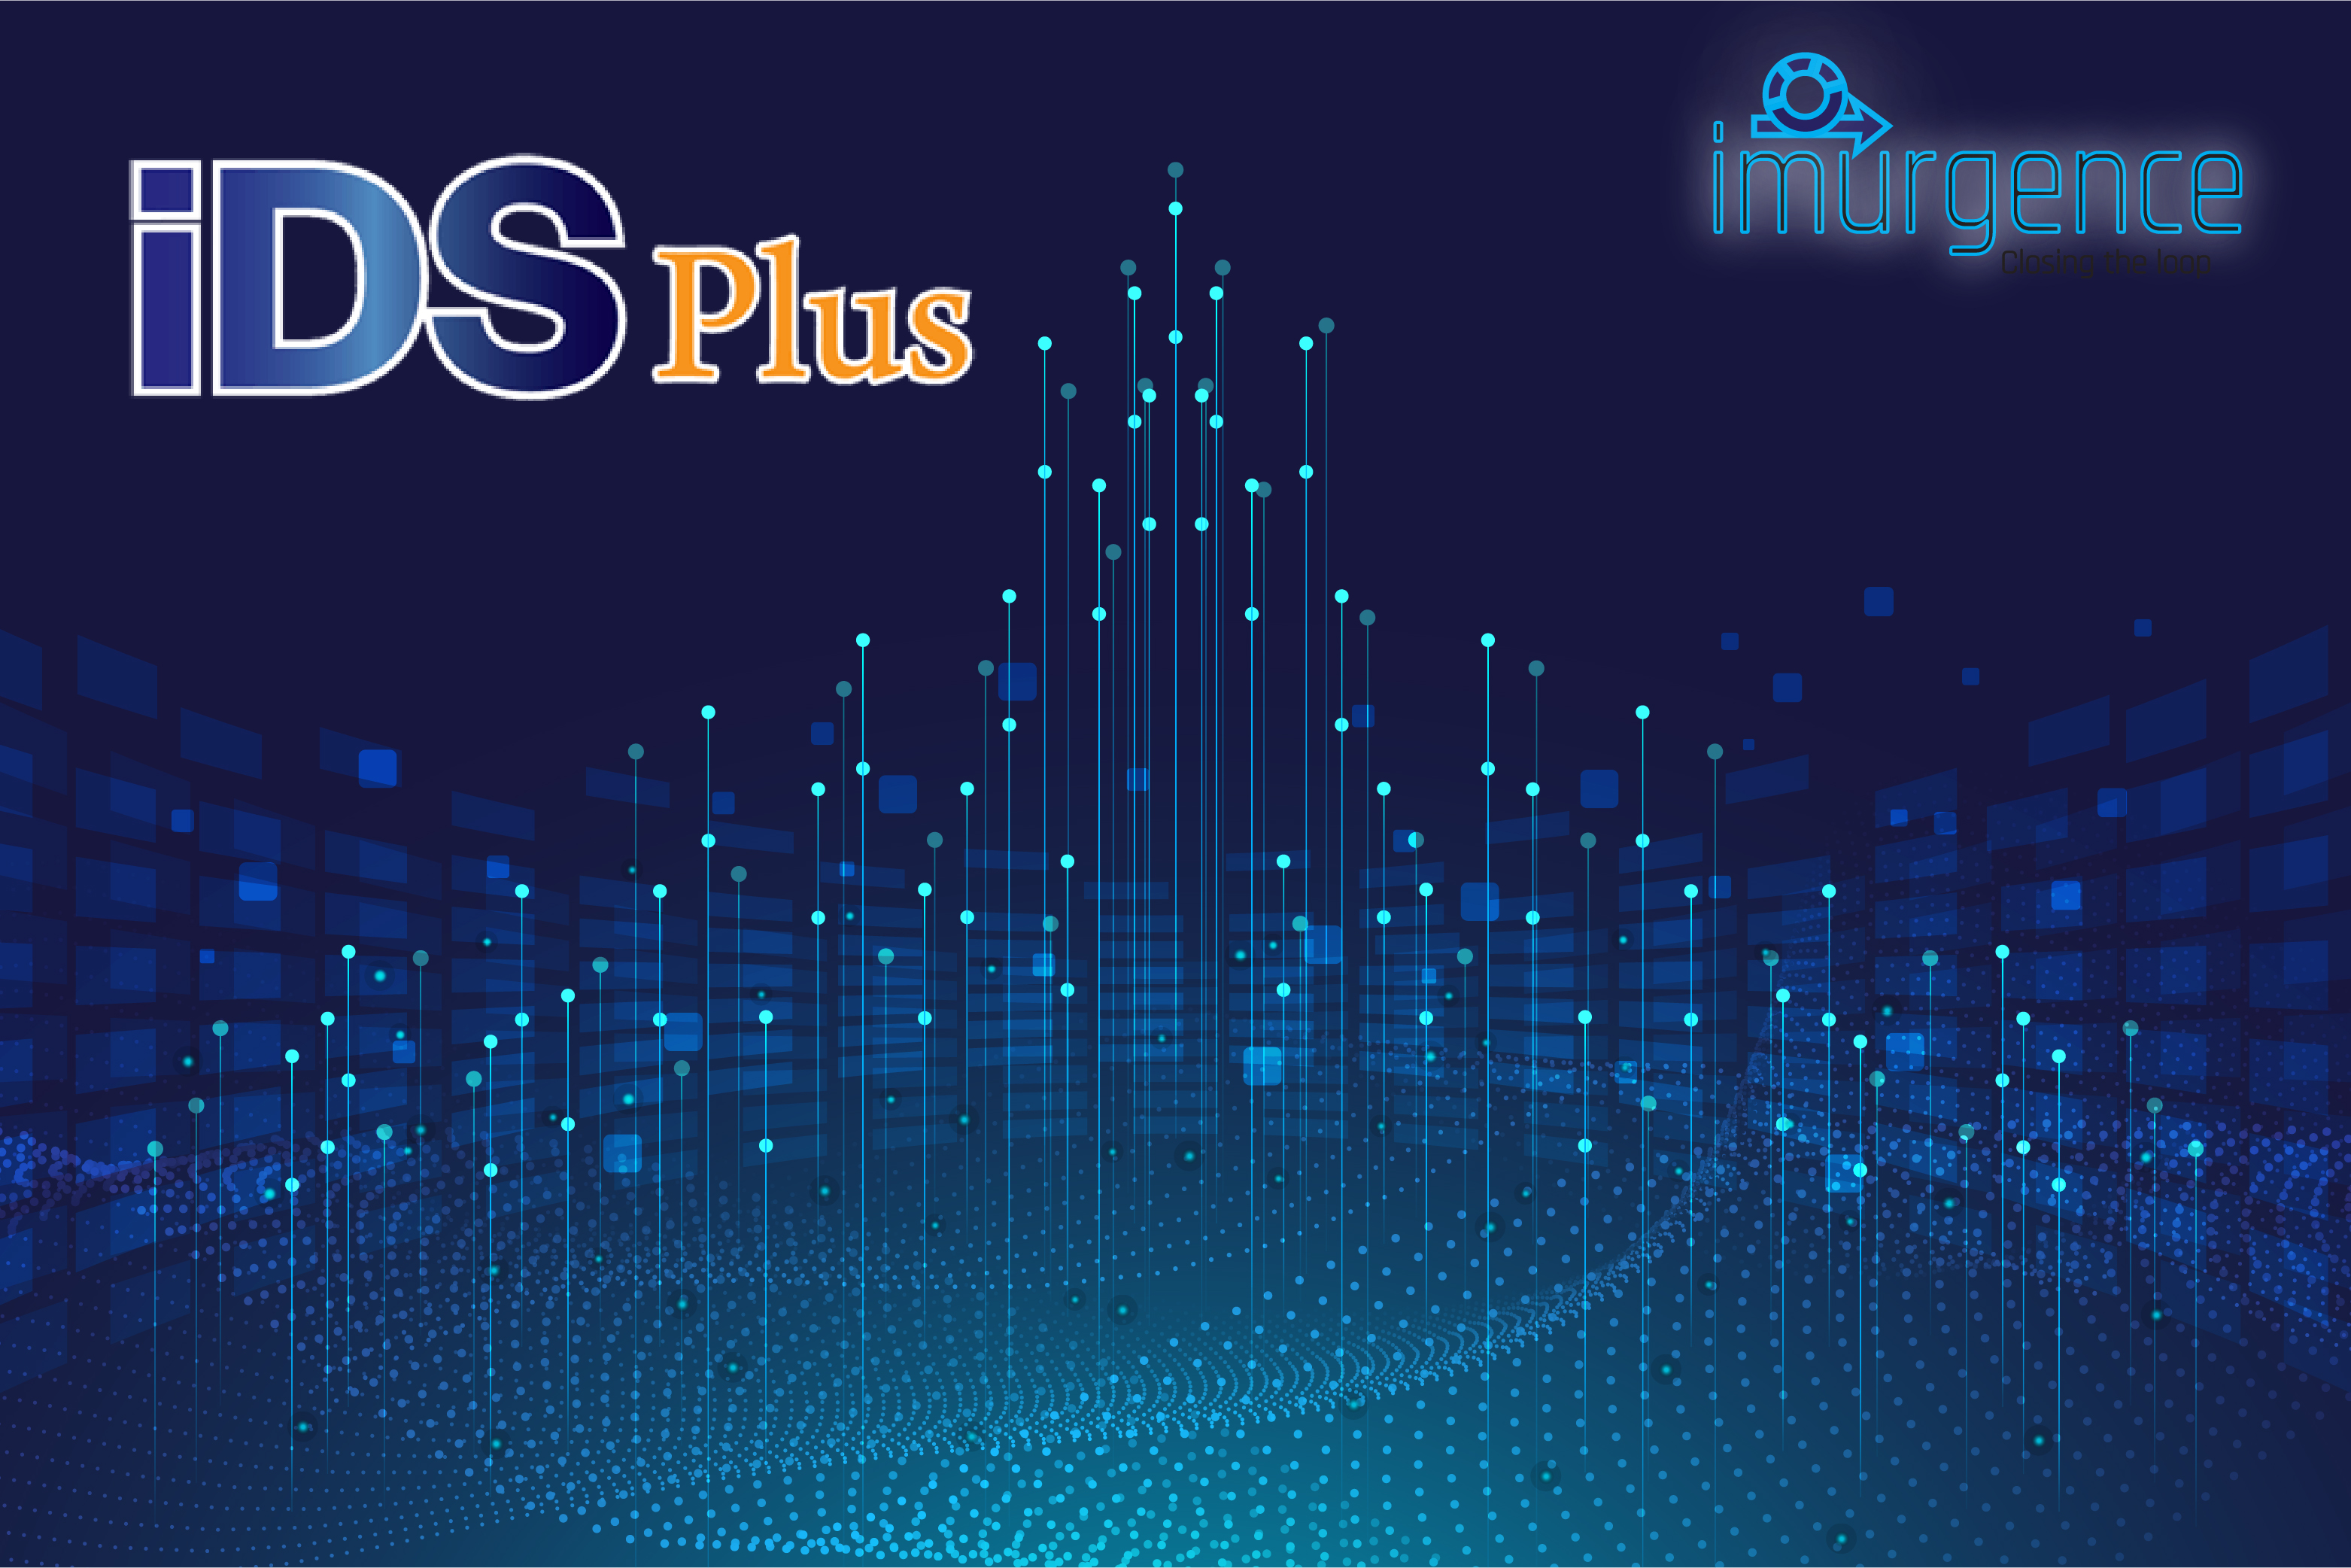 iDS Plus : Certificate Program in Data Science & Advanced Machine Learning using R & Python